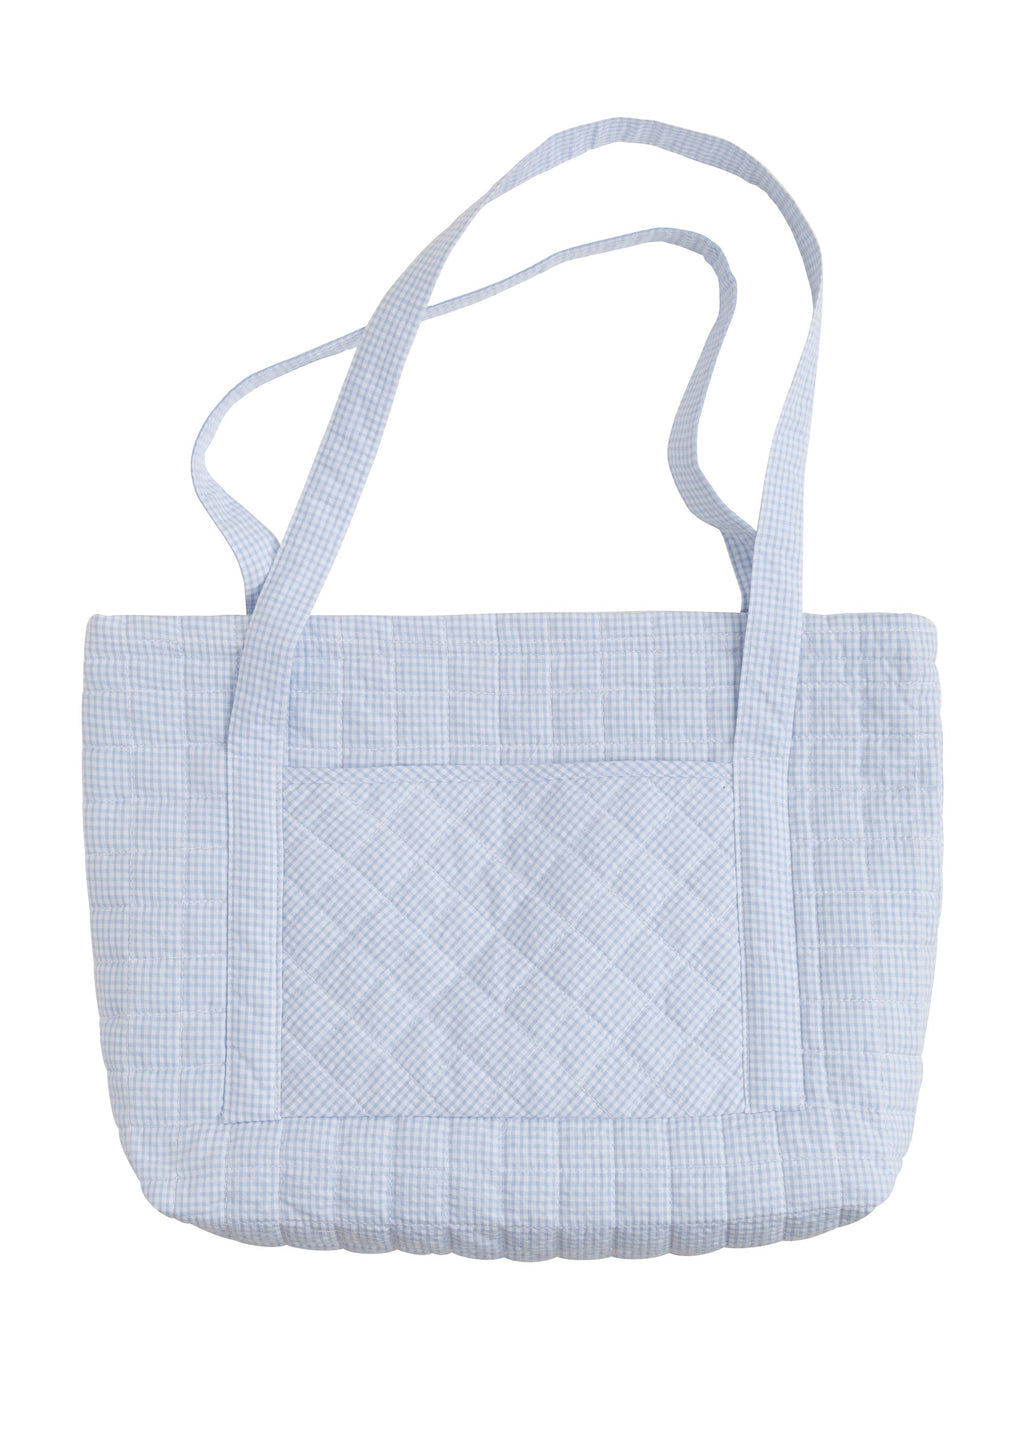 Quilted Blue Tote Bag - Born Childrens Boutique